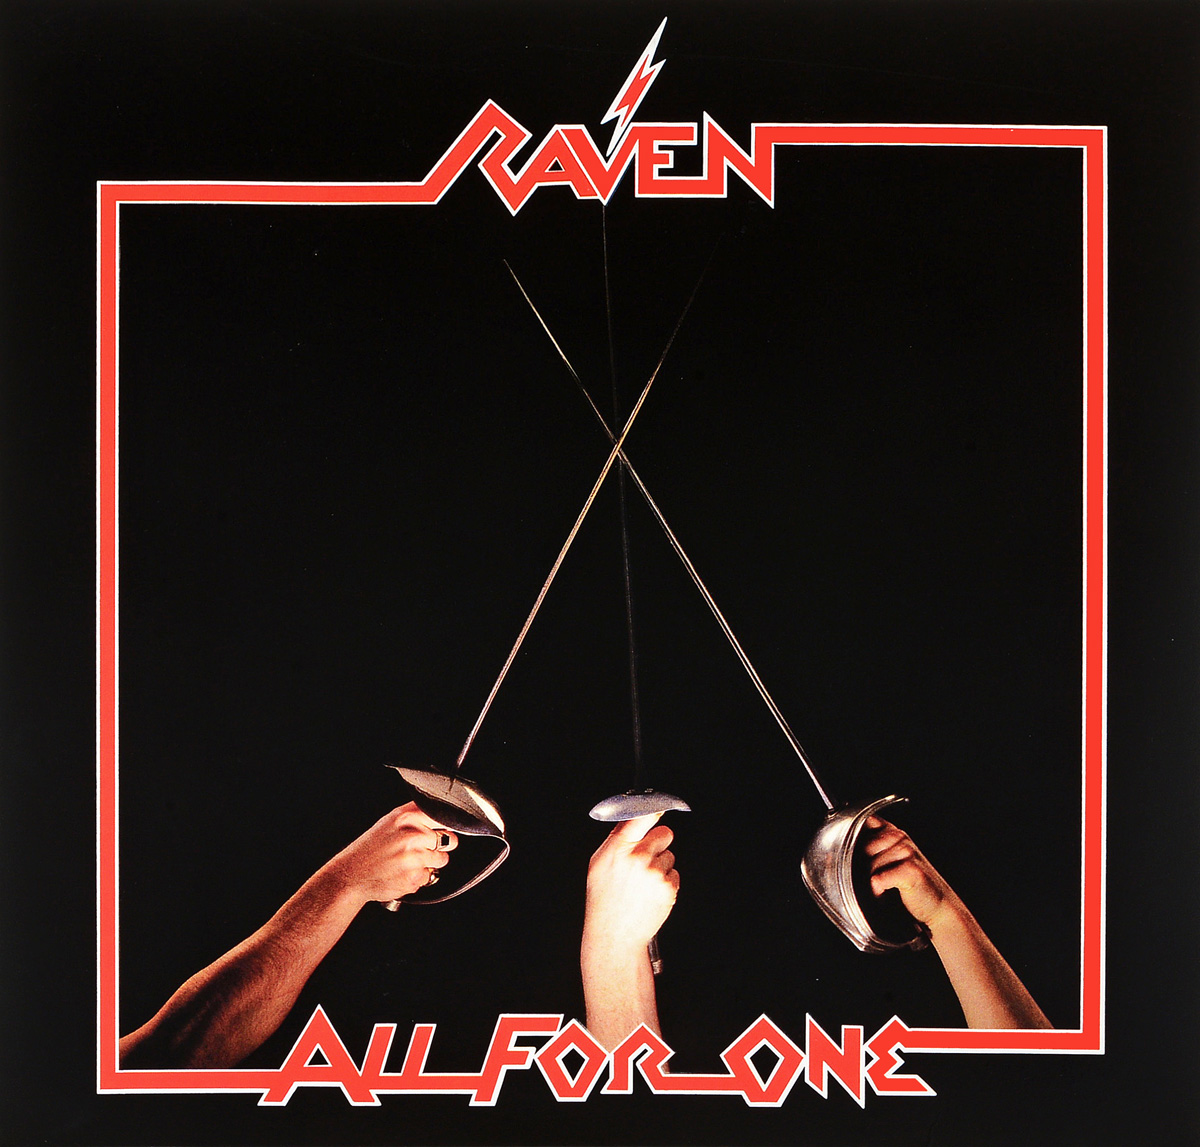 Raven Raven. All For One (2 LP)